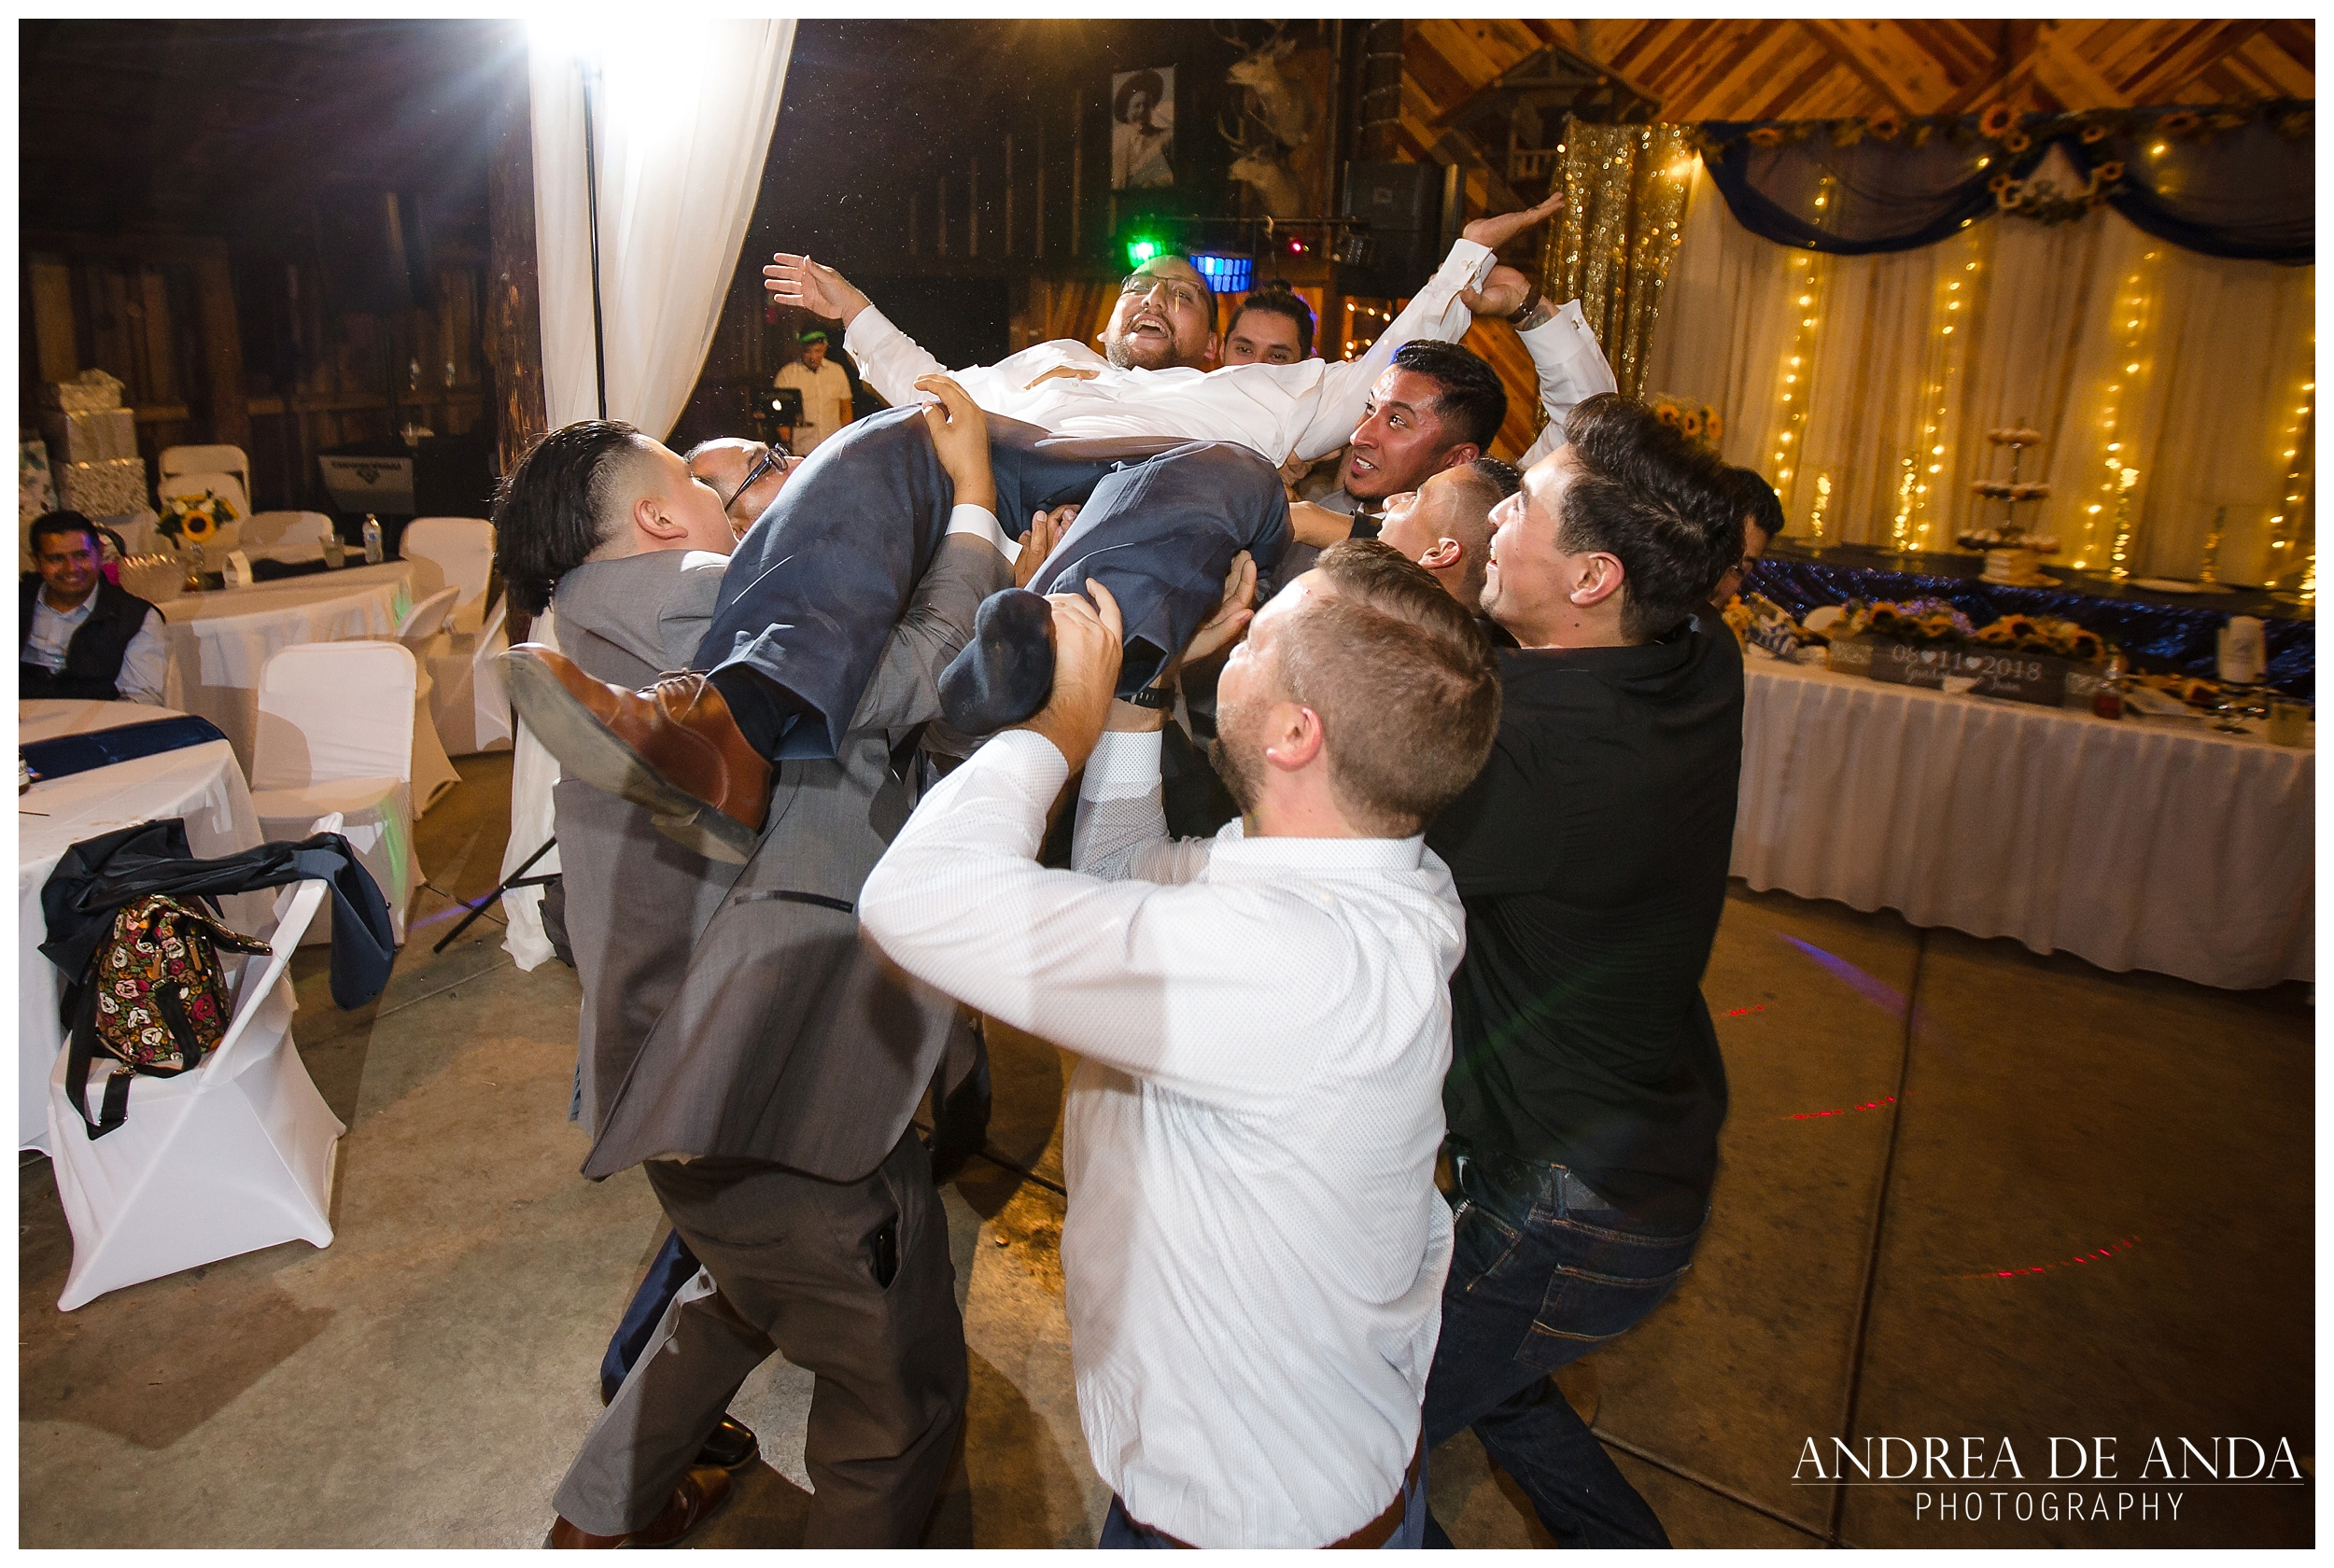 San Jose Wedding Photograhy by Andrea de Anda Photography__0031.jpg